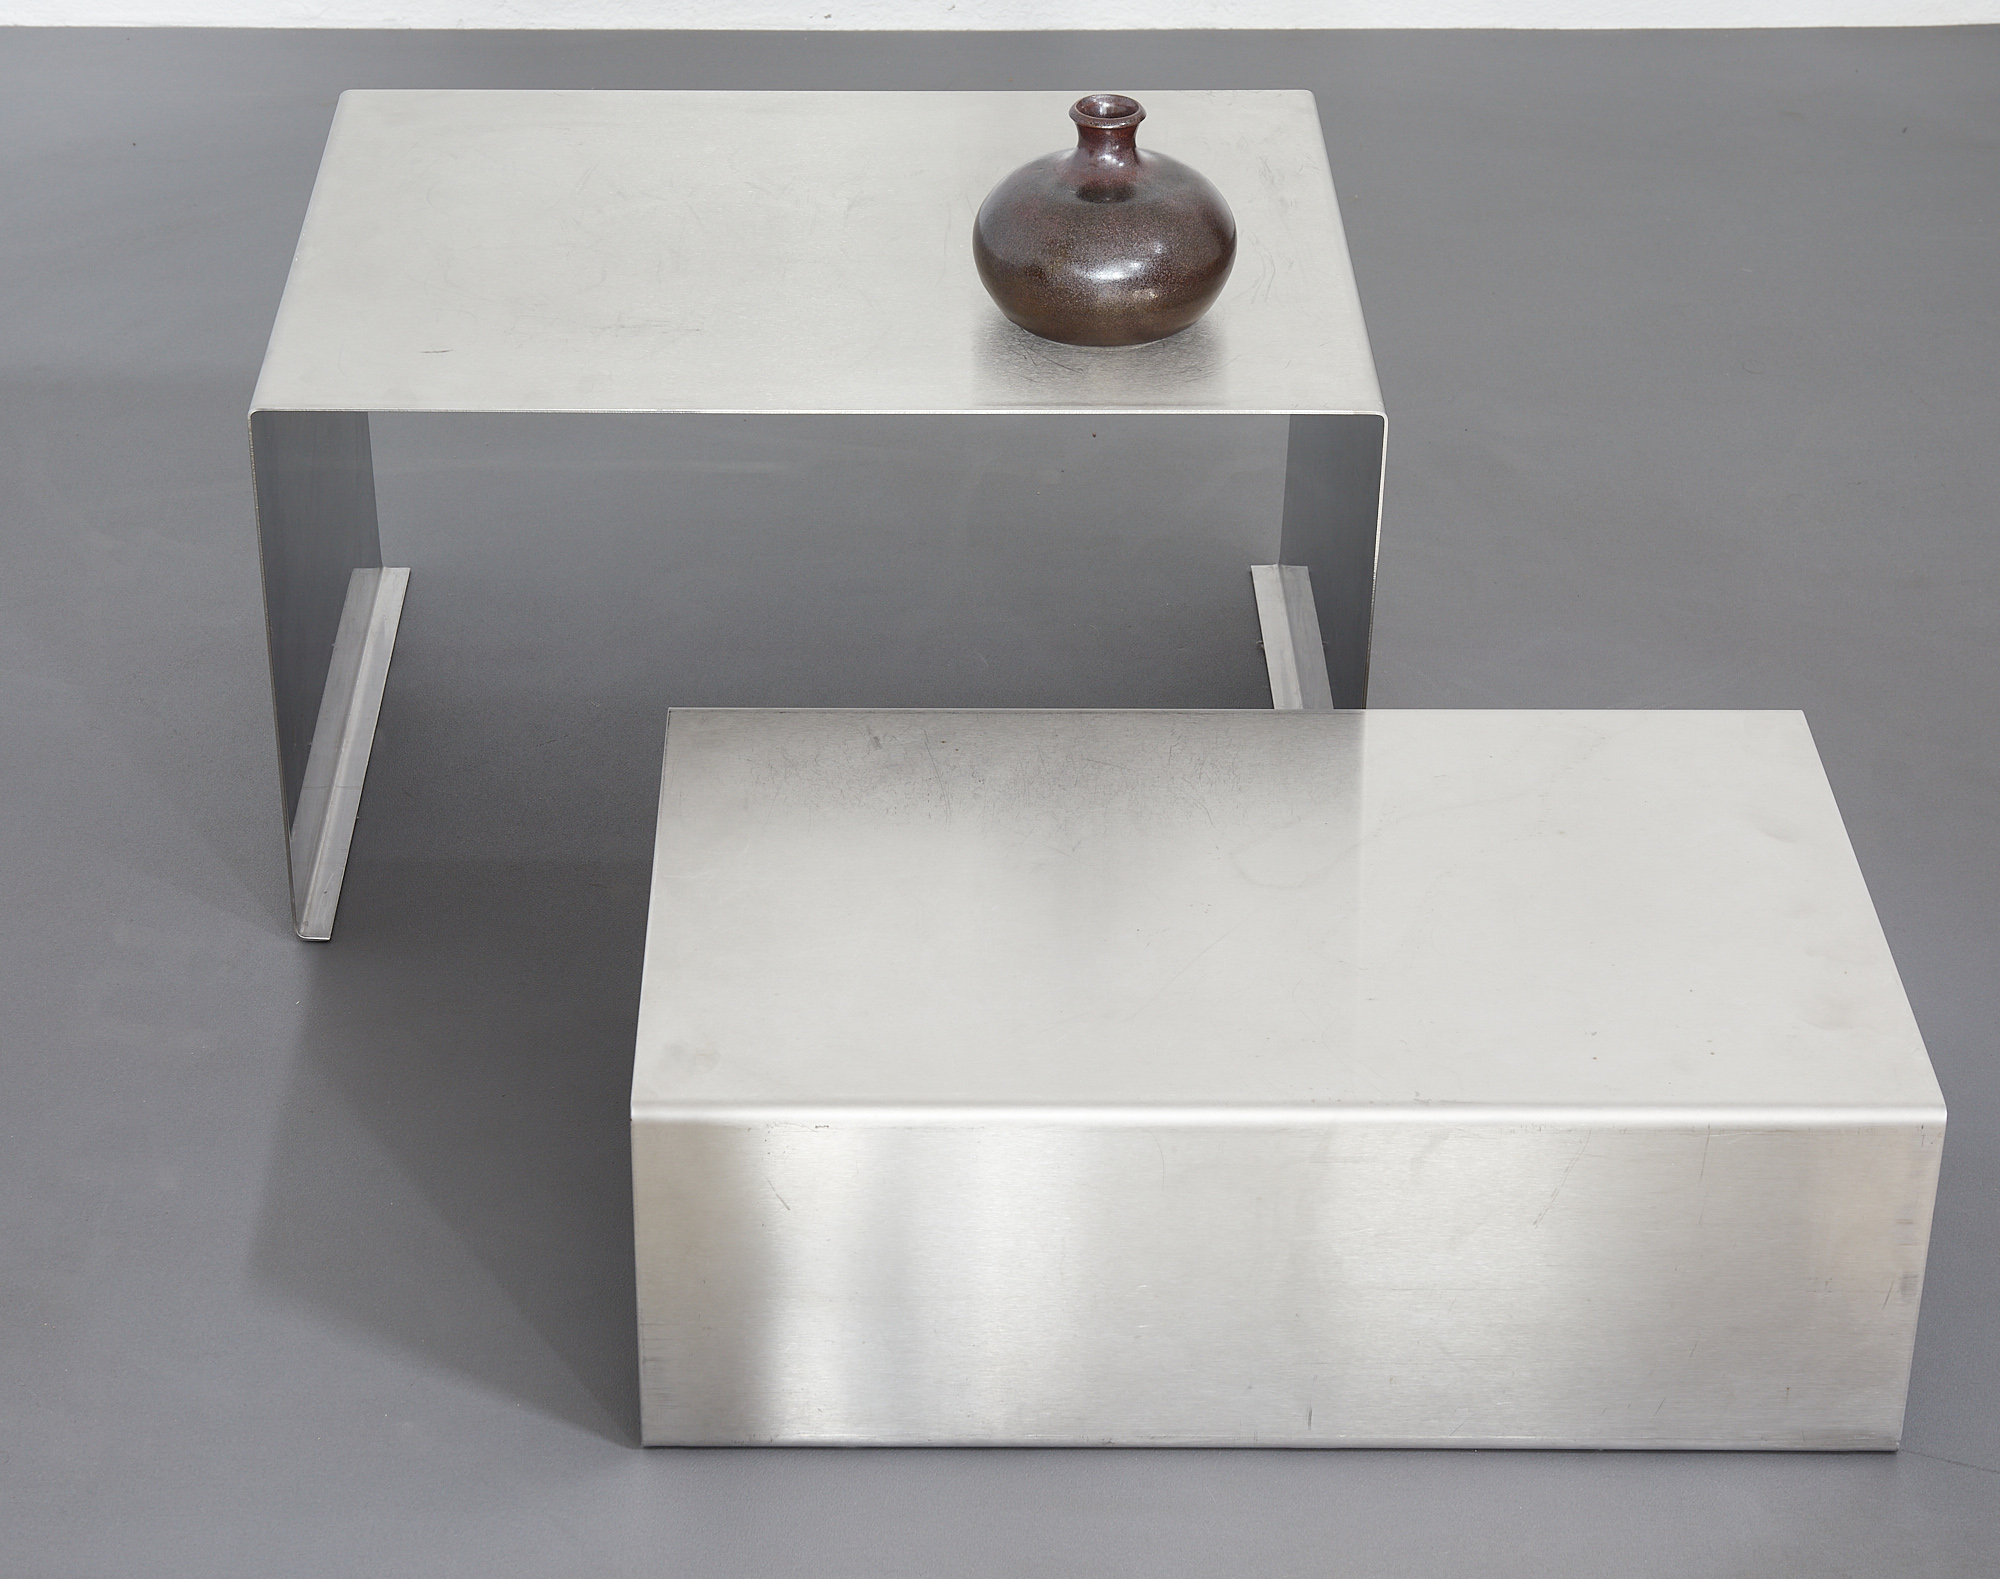 set-of-low-tables-in-brushed-metal-1970-1980-image-02